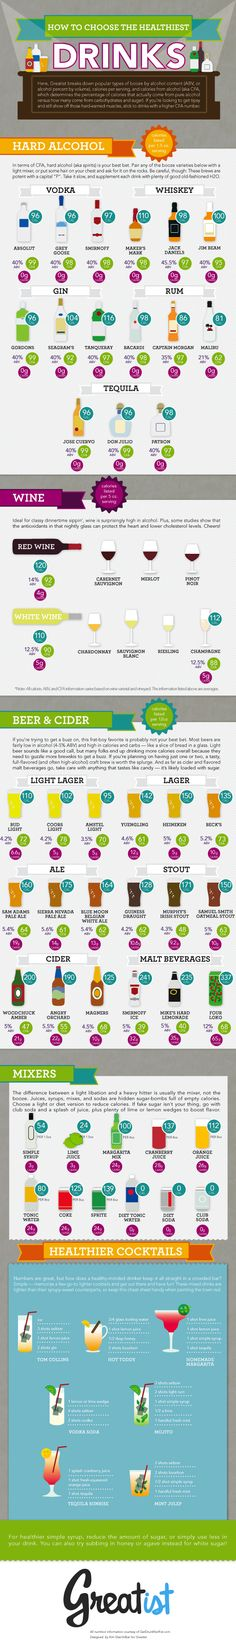 Types of alcohol by percentage of alcohol, calories and carbs.